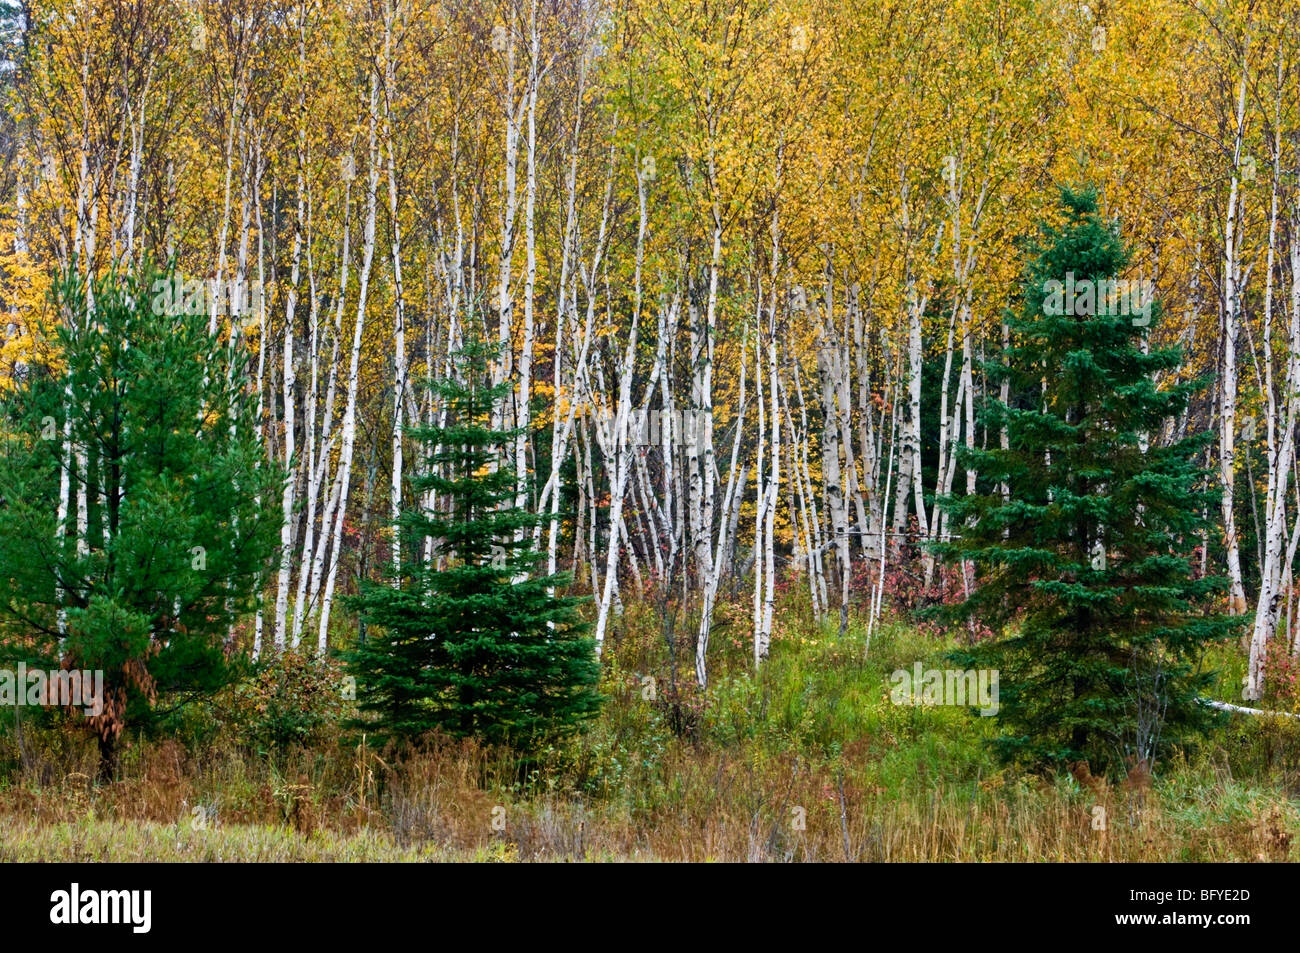 White birch grove and spruces in autumn, Greater Sudbury, Ontario, Canada - Stock Image